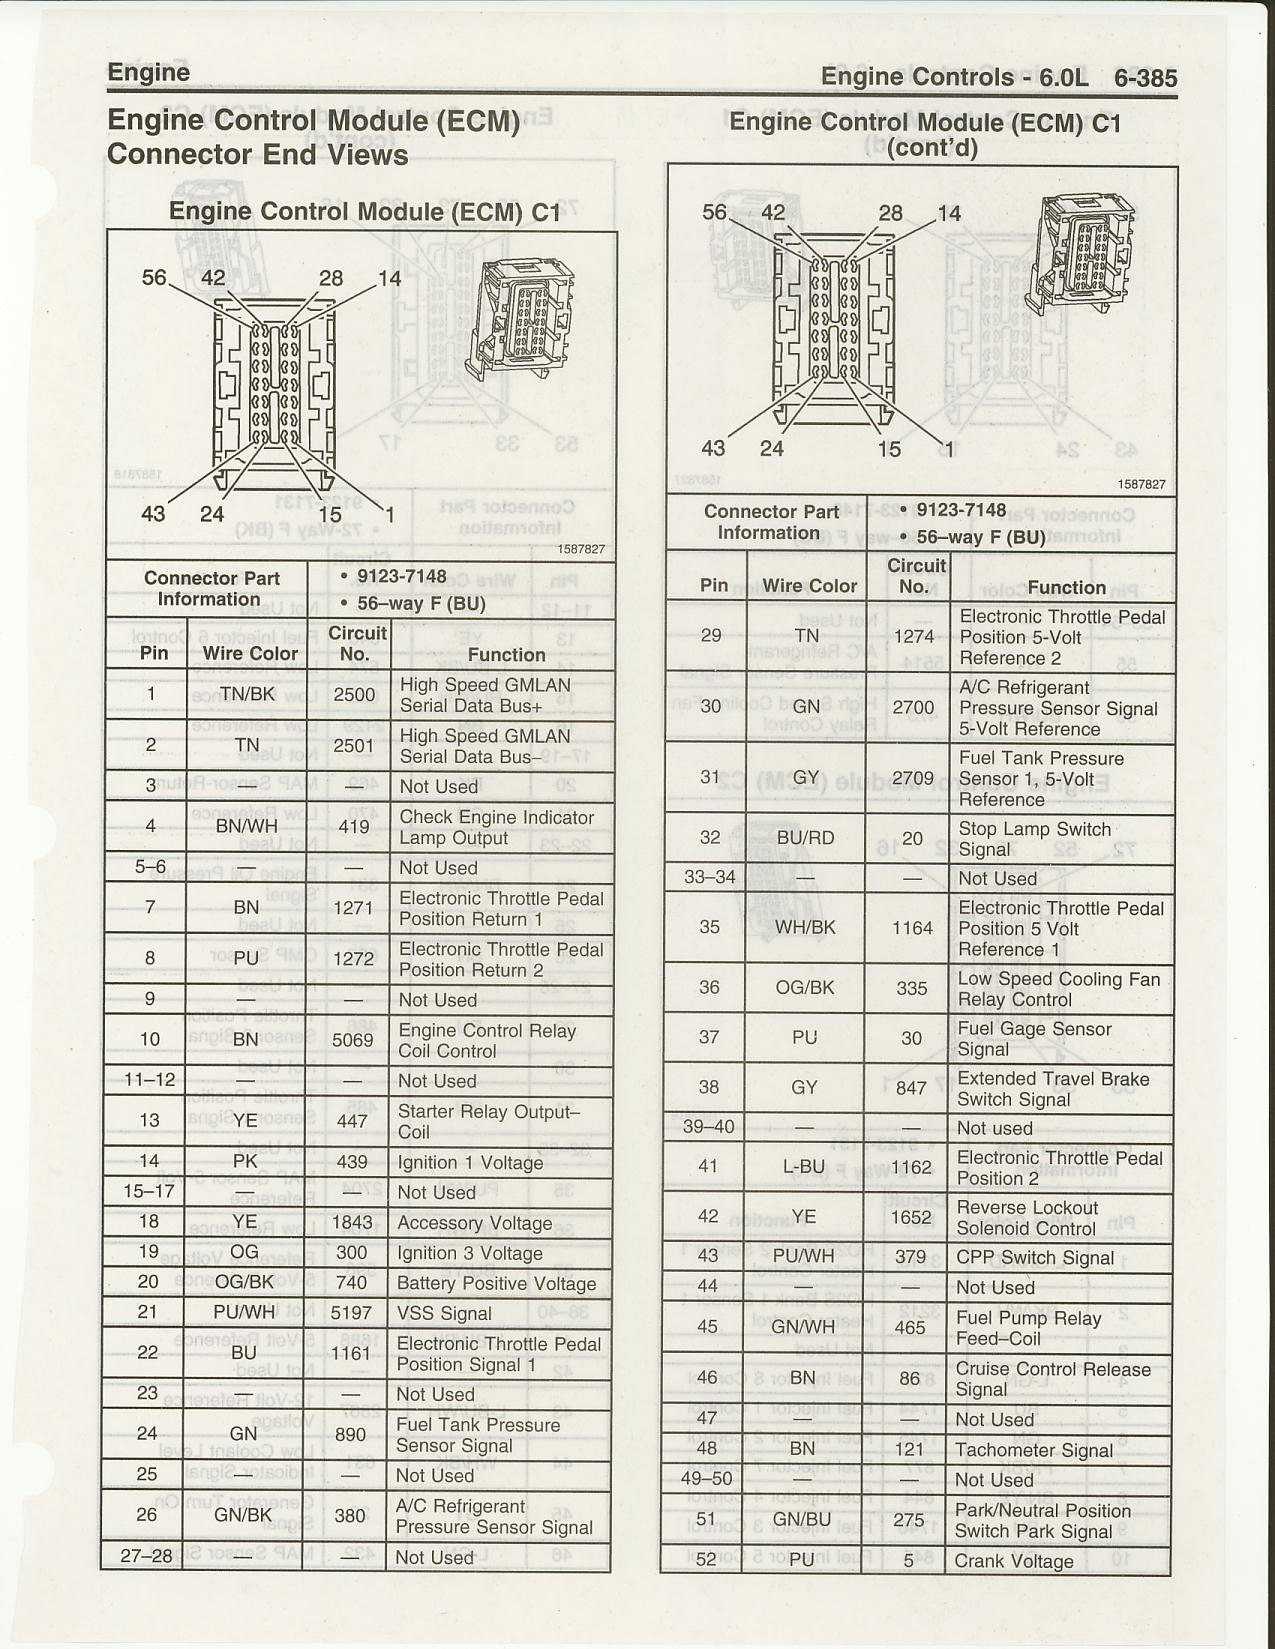 2005 Buick Rainier Wiring Diagram Pinouts And Diagrams Page 4 Ls1tech Camaro Firebird Ls2 C1